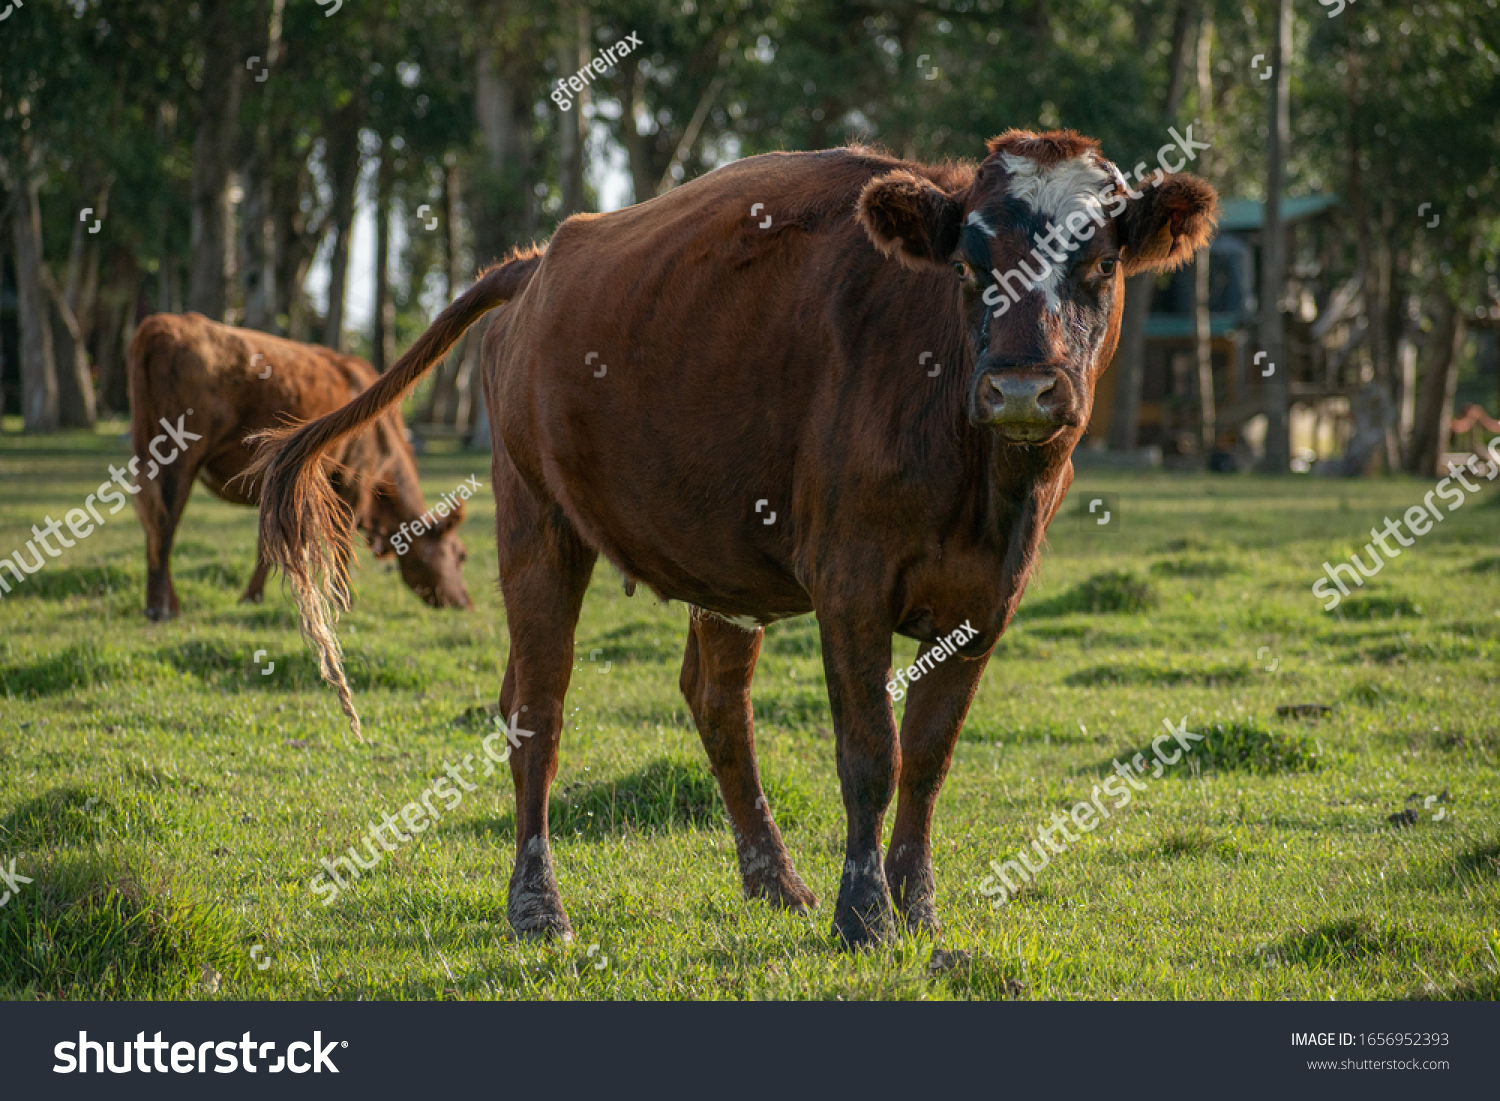 stock-photo-brown-cow-at-a-field-1656952